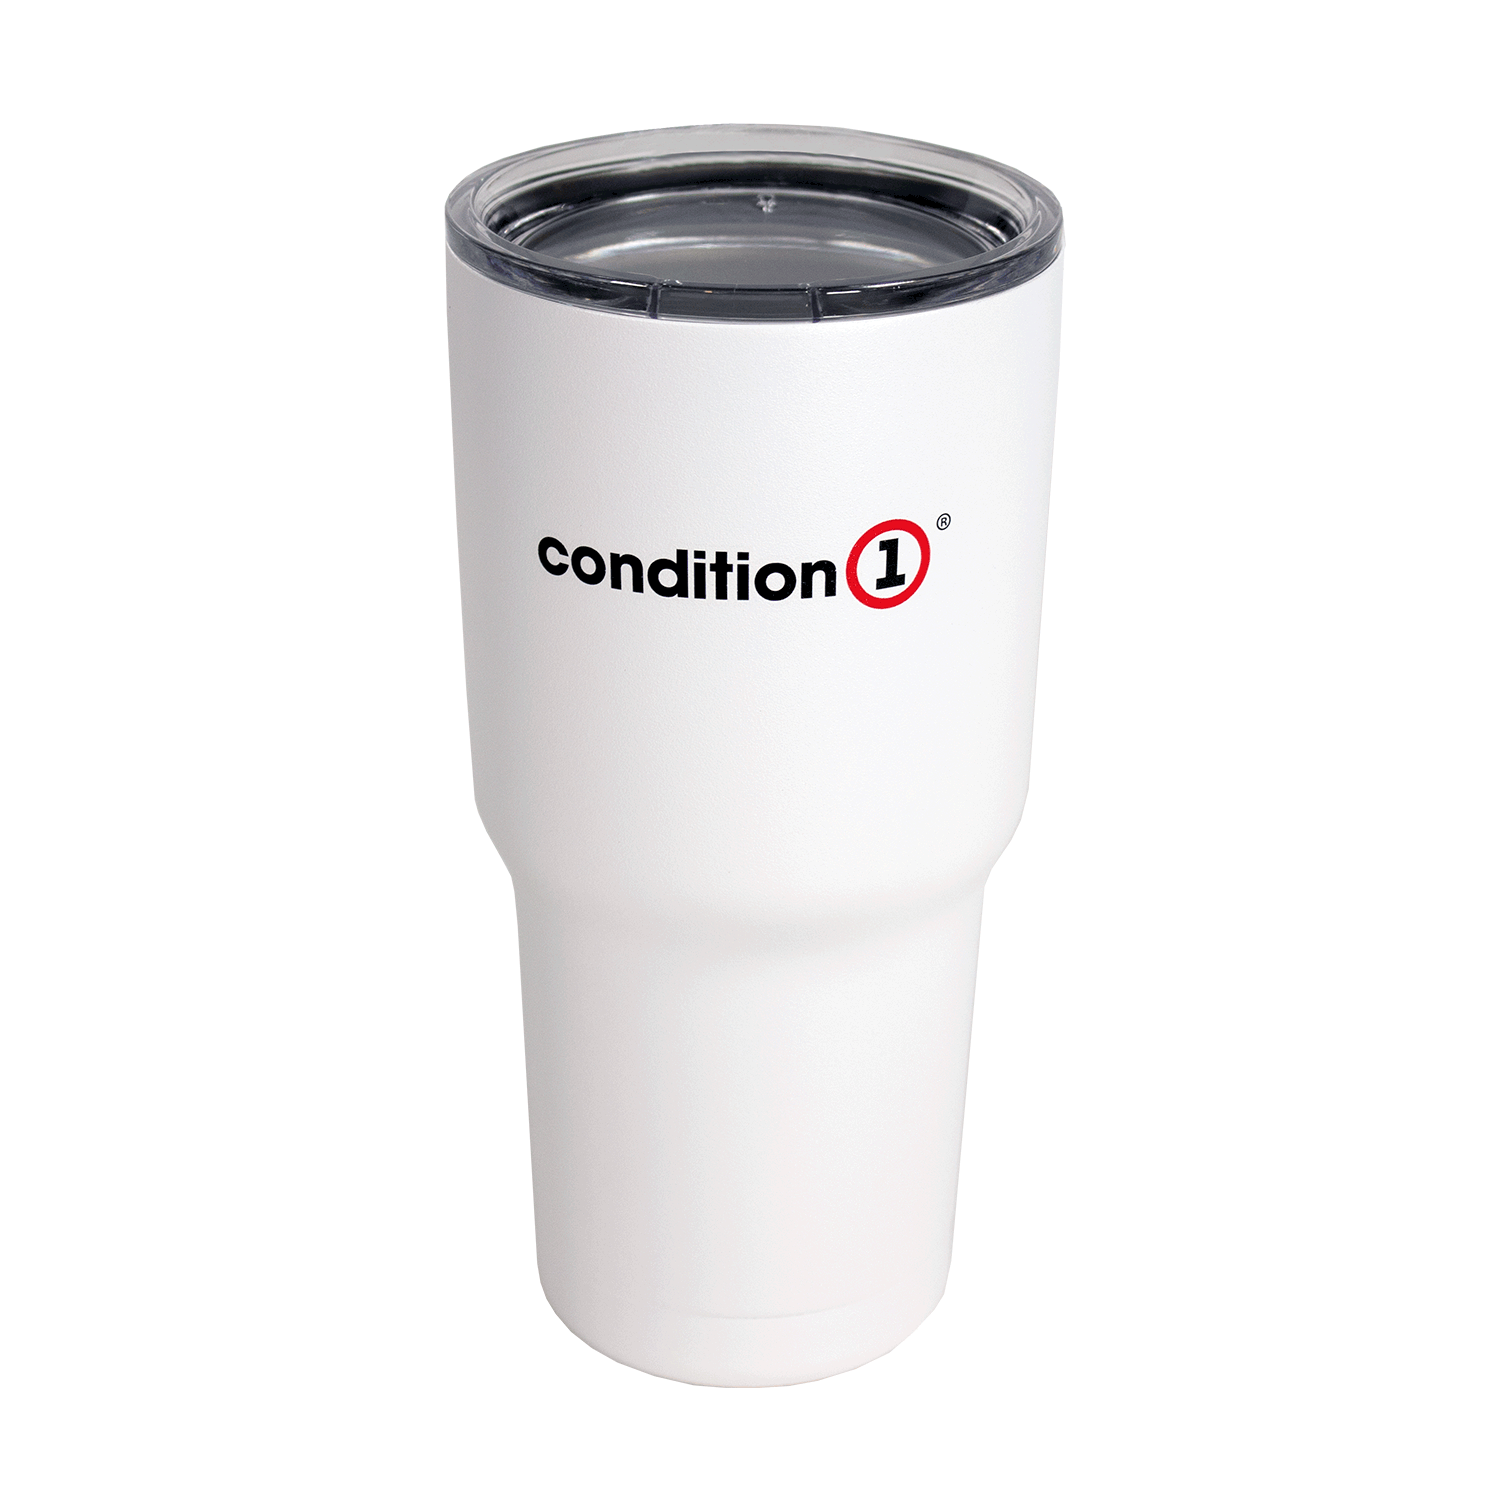 30 Oz Condition 1 Insulated Tumbler